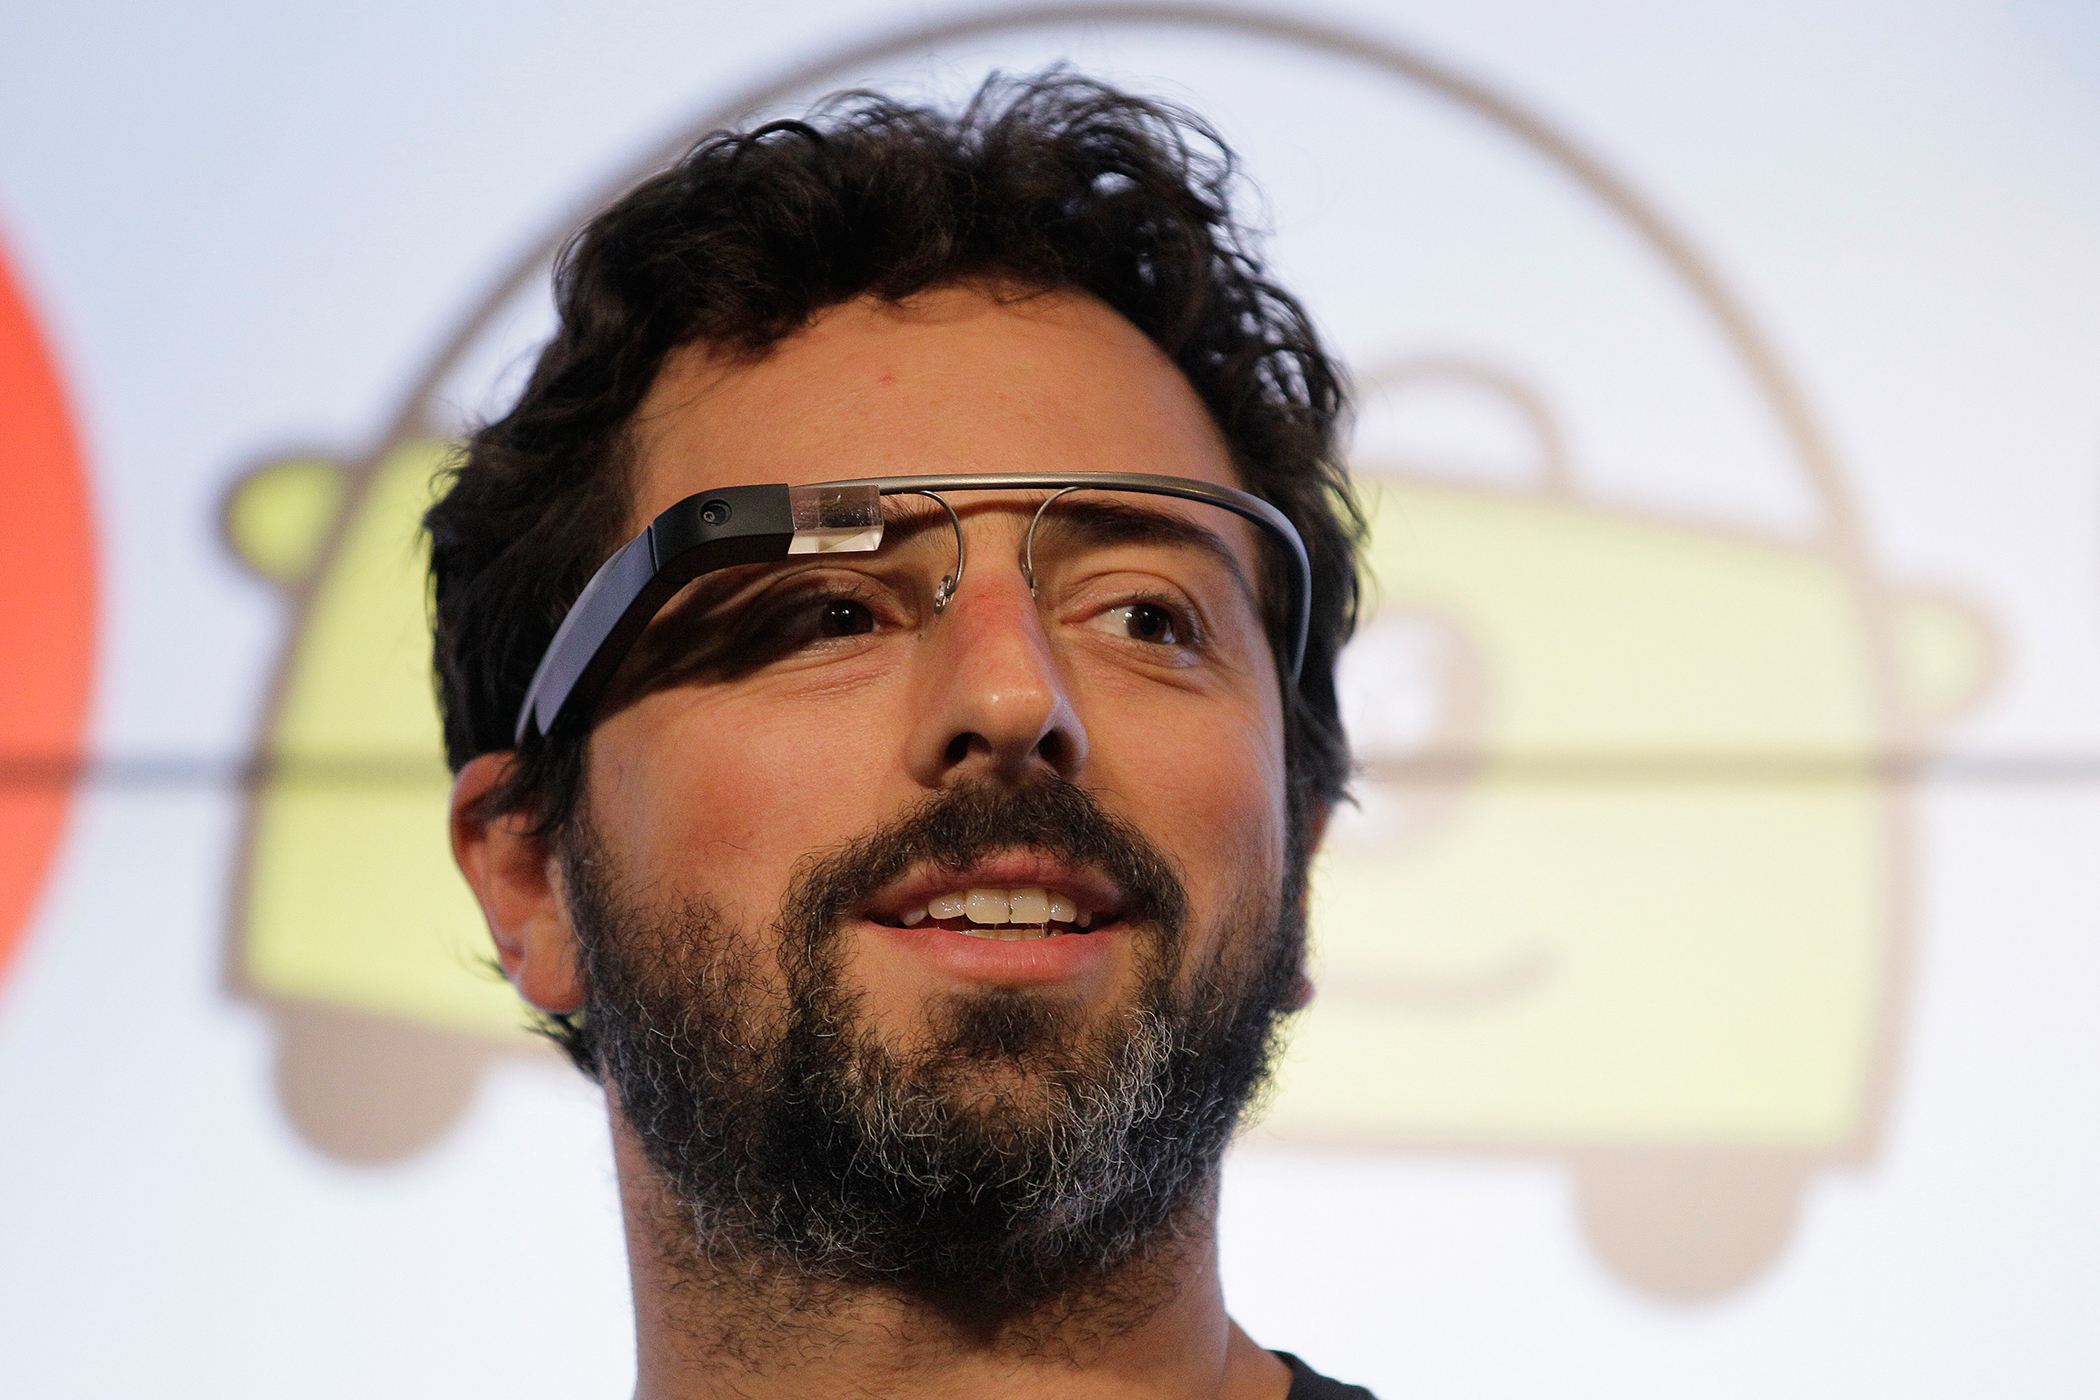 Google co-founder Sergey Brin stands on stage during a bill signing by California Gov. Edmund G. Brown Jr., for driverless cars at Google headquarters in Mountain View, California, September 25, 2012.